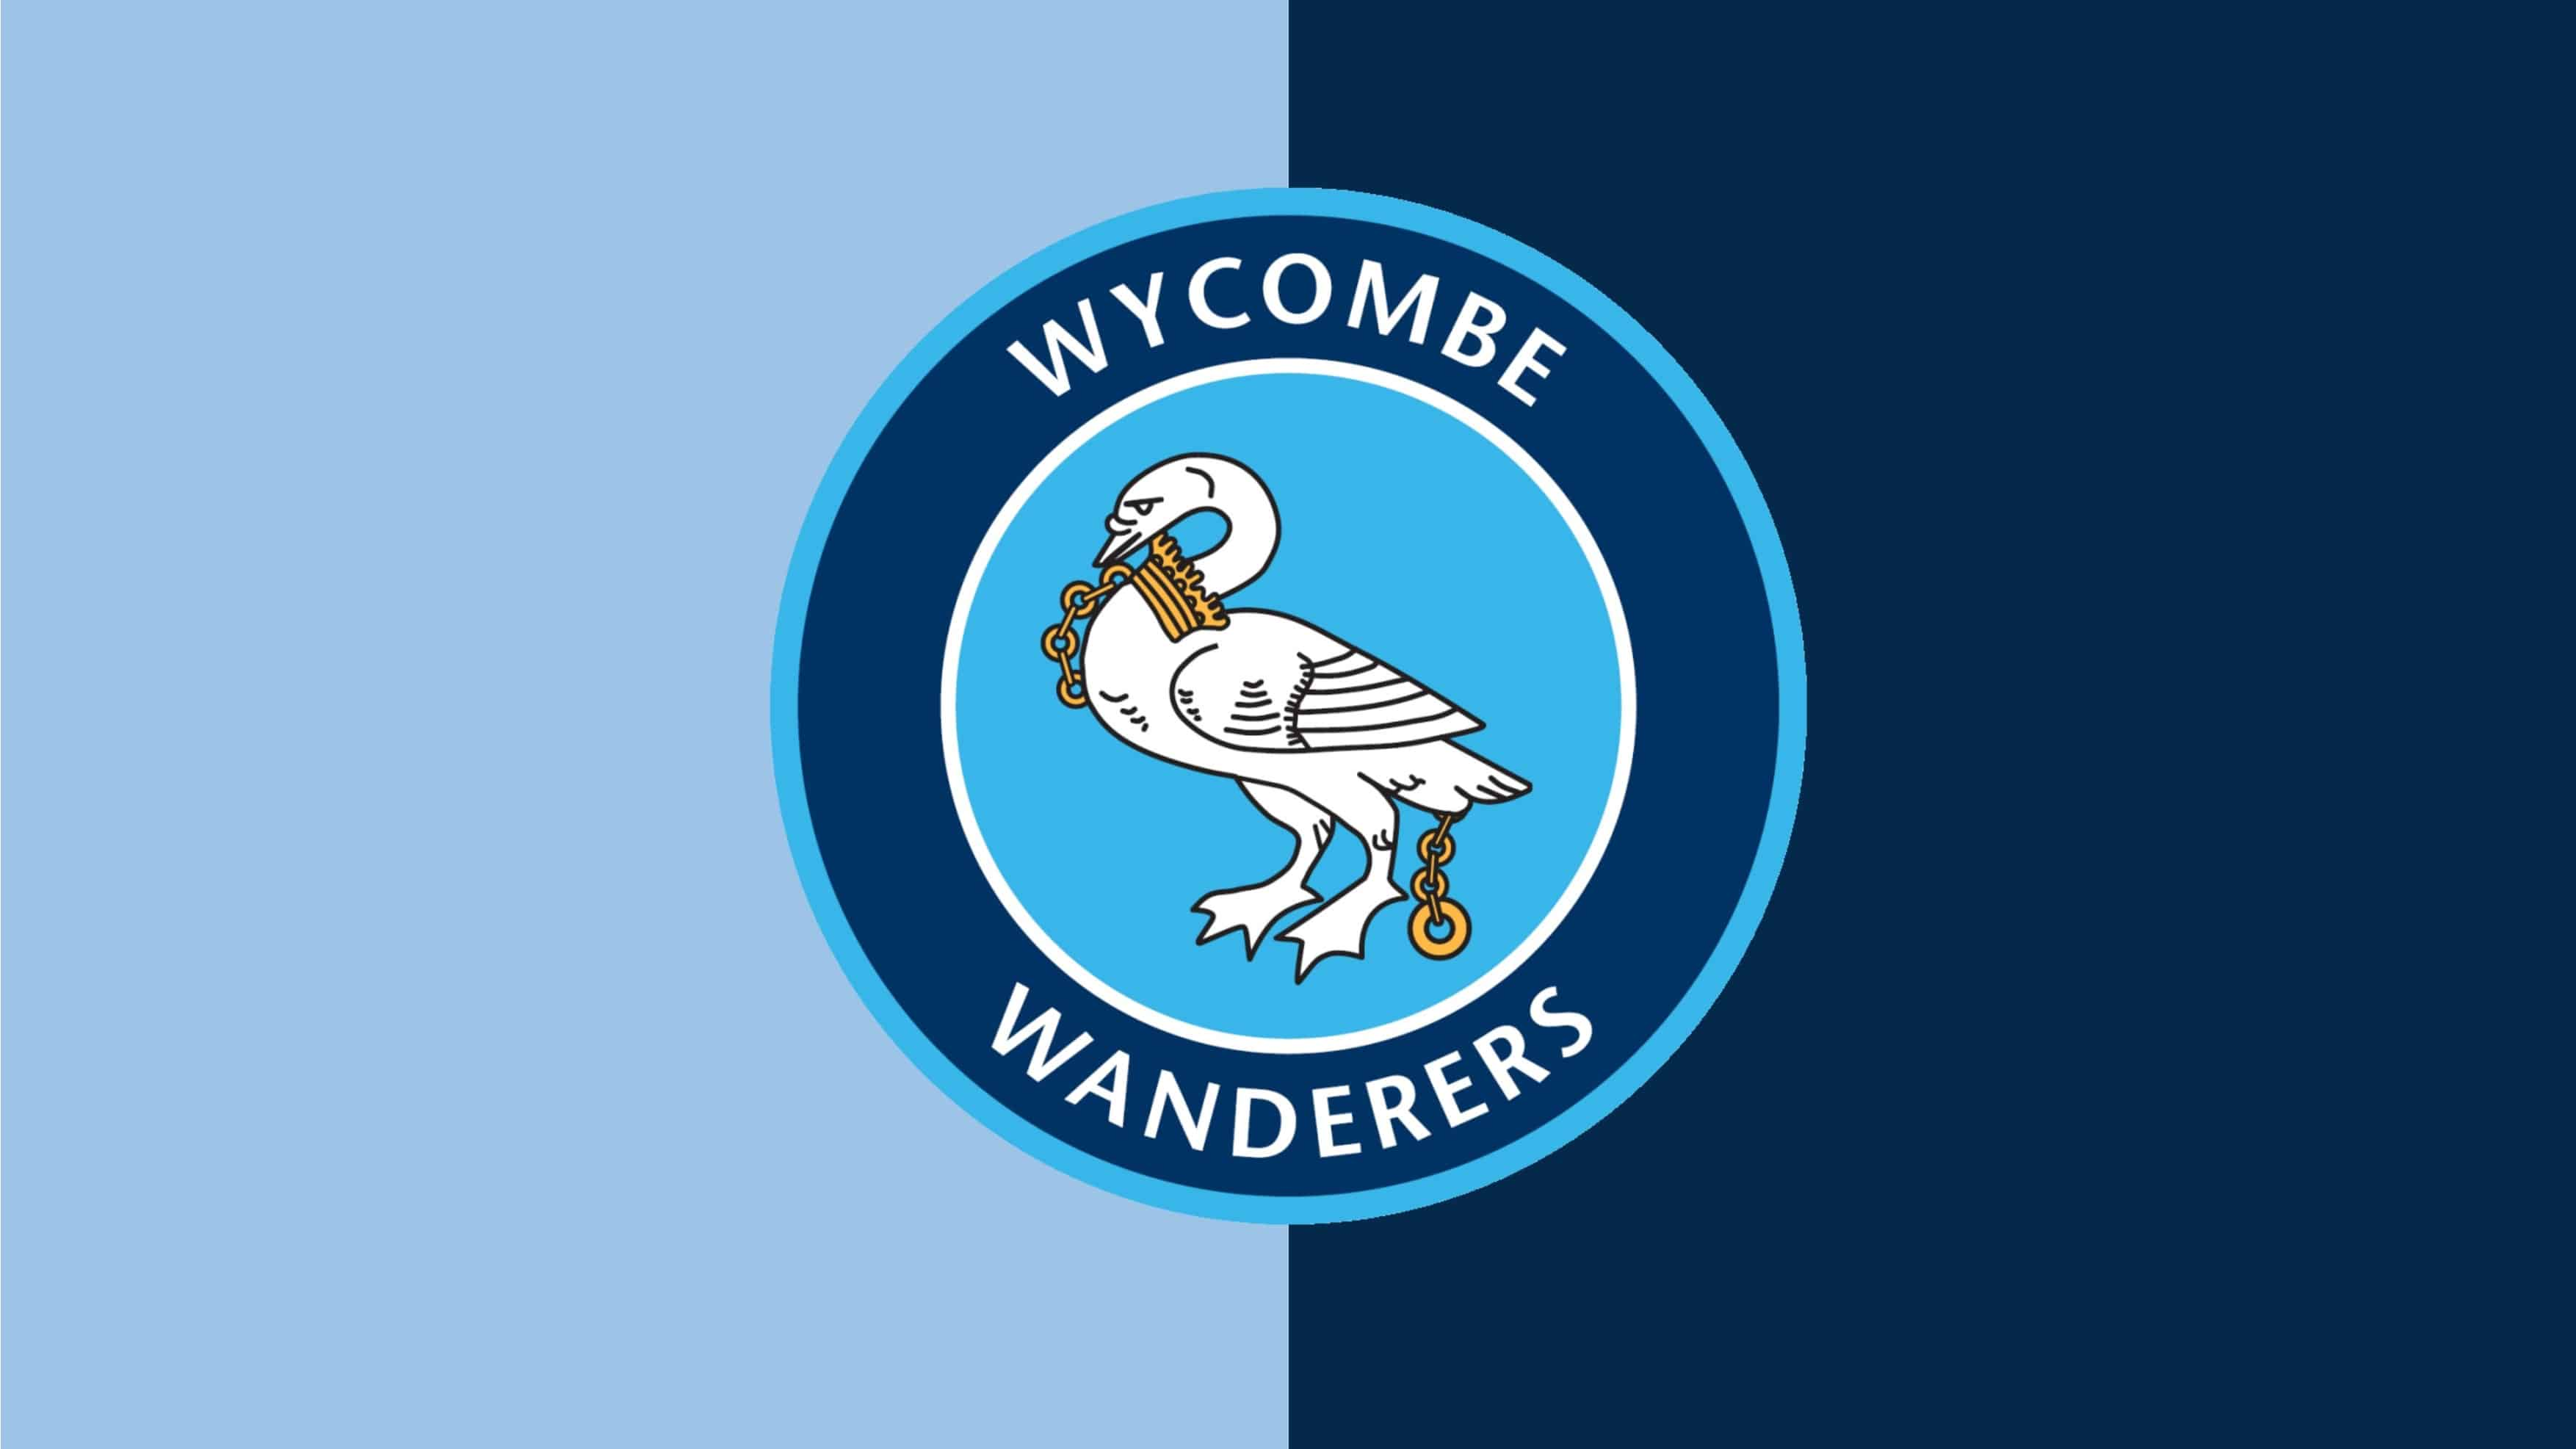 wycombe wanderers preview aldershot town fc youth group logo maker youth group logo creator